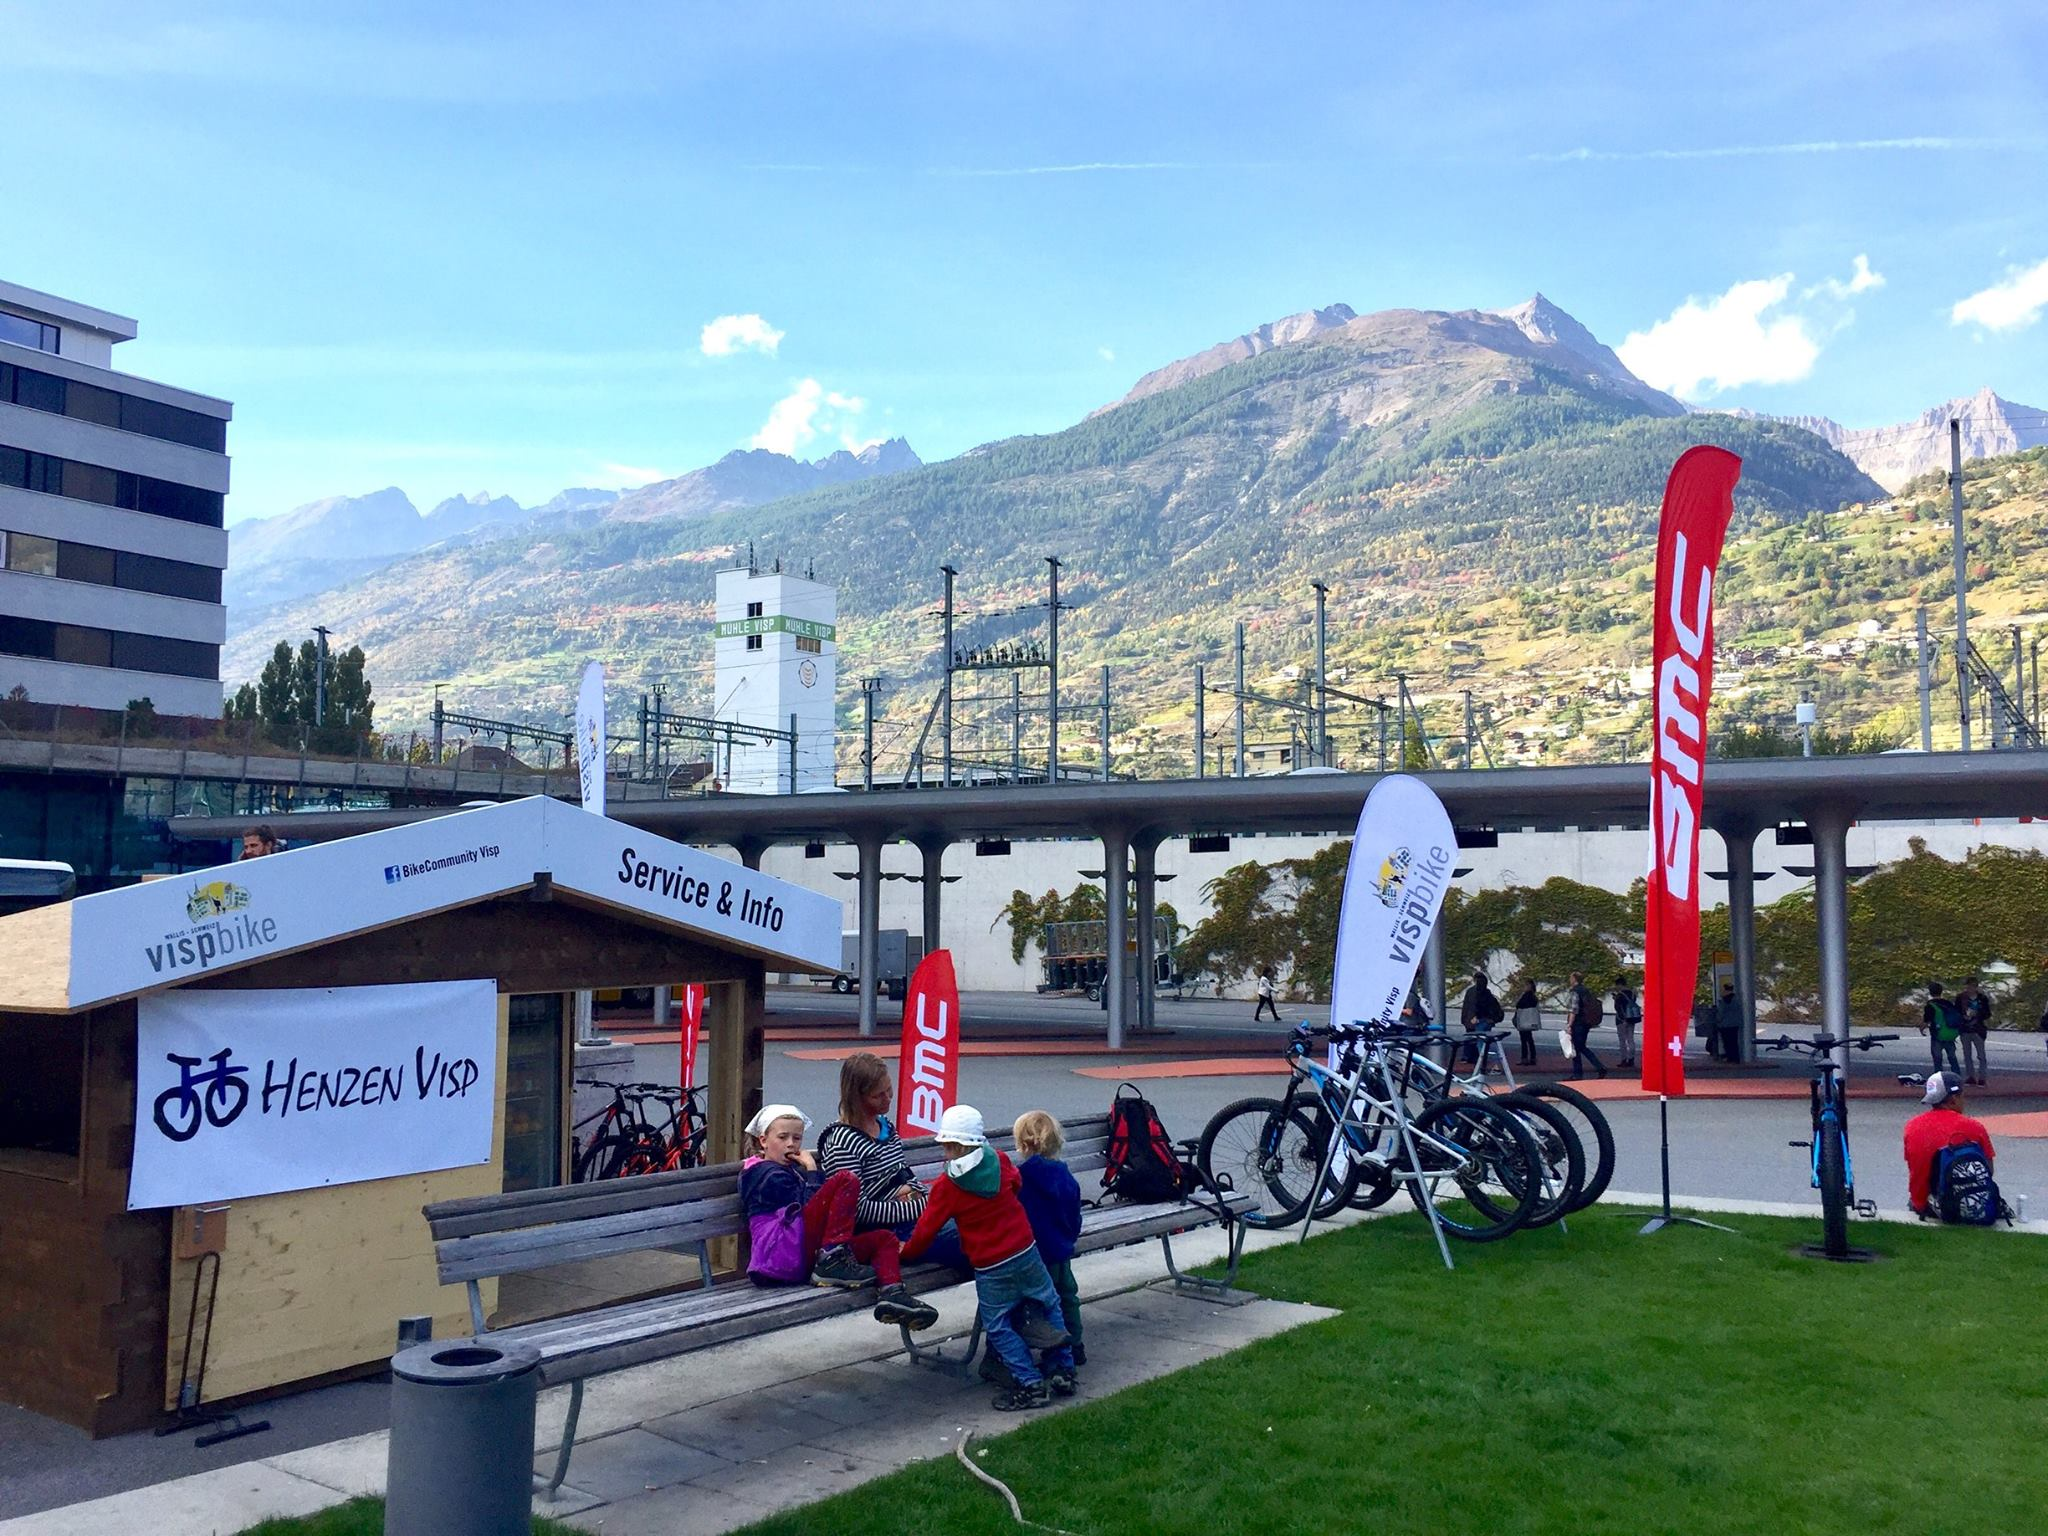 Service +Info point@ station Visp - Good News!Directly at the station Visp (opposite Postbuses) there is a small SERVICE & INFO place in late summer/autumn 2017 (in the afternoon from 13:00 - 18:00)Stop by and have a look:✔️ to test different bicycles, bikes or e-bikes✔️ to get your bike fixed or use the tools✔️ to get tips or tour-ideasA big THANKS goes out to: Visp Tourismus | Velo Henzen Visp | PostAuto / CarPostal / AutoPostale / PostBus | Pfammatter Maler und Gipser AG | Gemeinde Visp